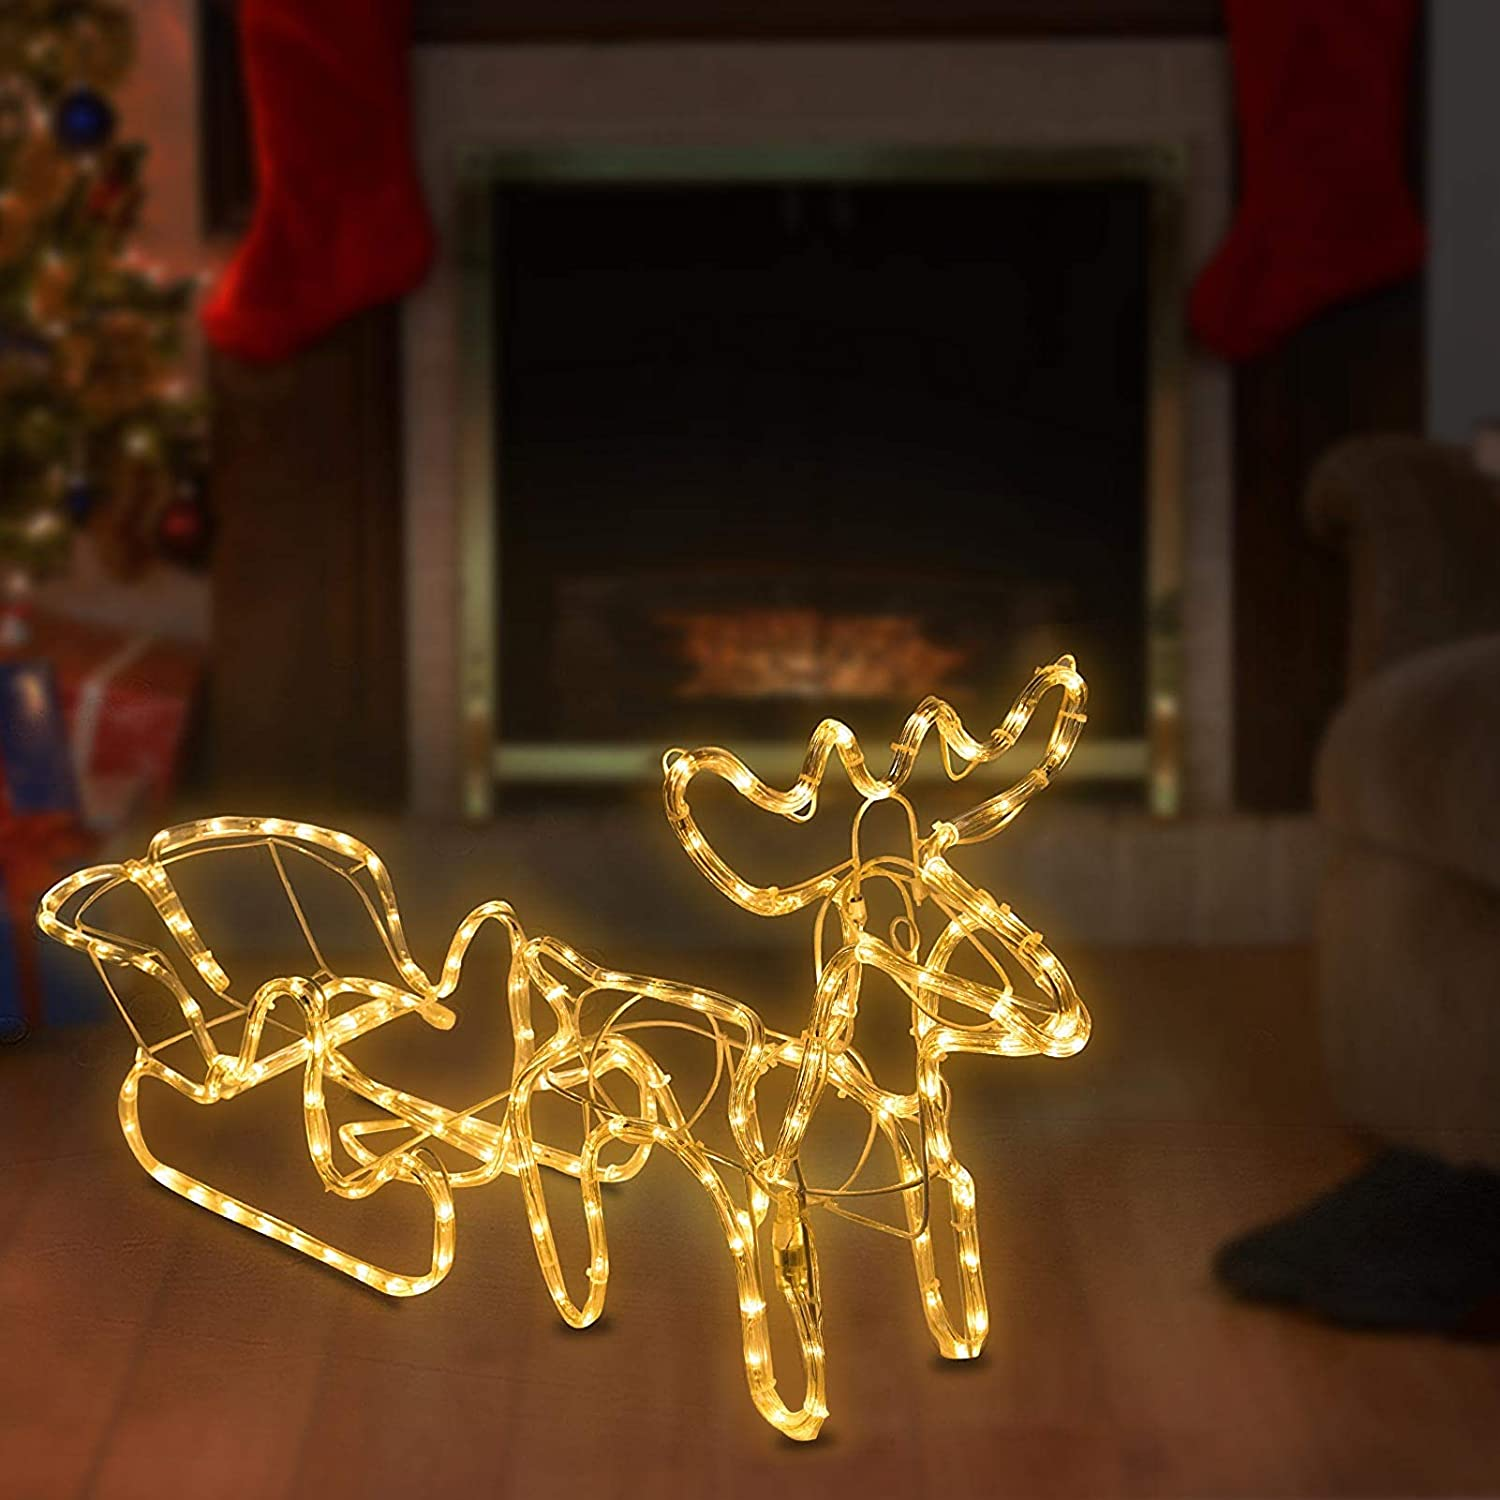 XUEYU Pre-lit Christmas Lighted Sleigh and Reindeer Waterproof Plug in LED Rainbow Tube Decoration for Outdoor Yard Home Party